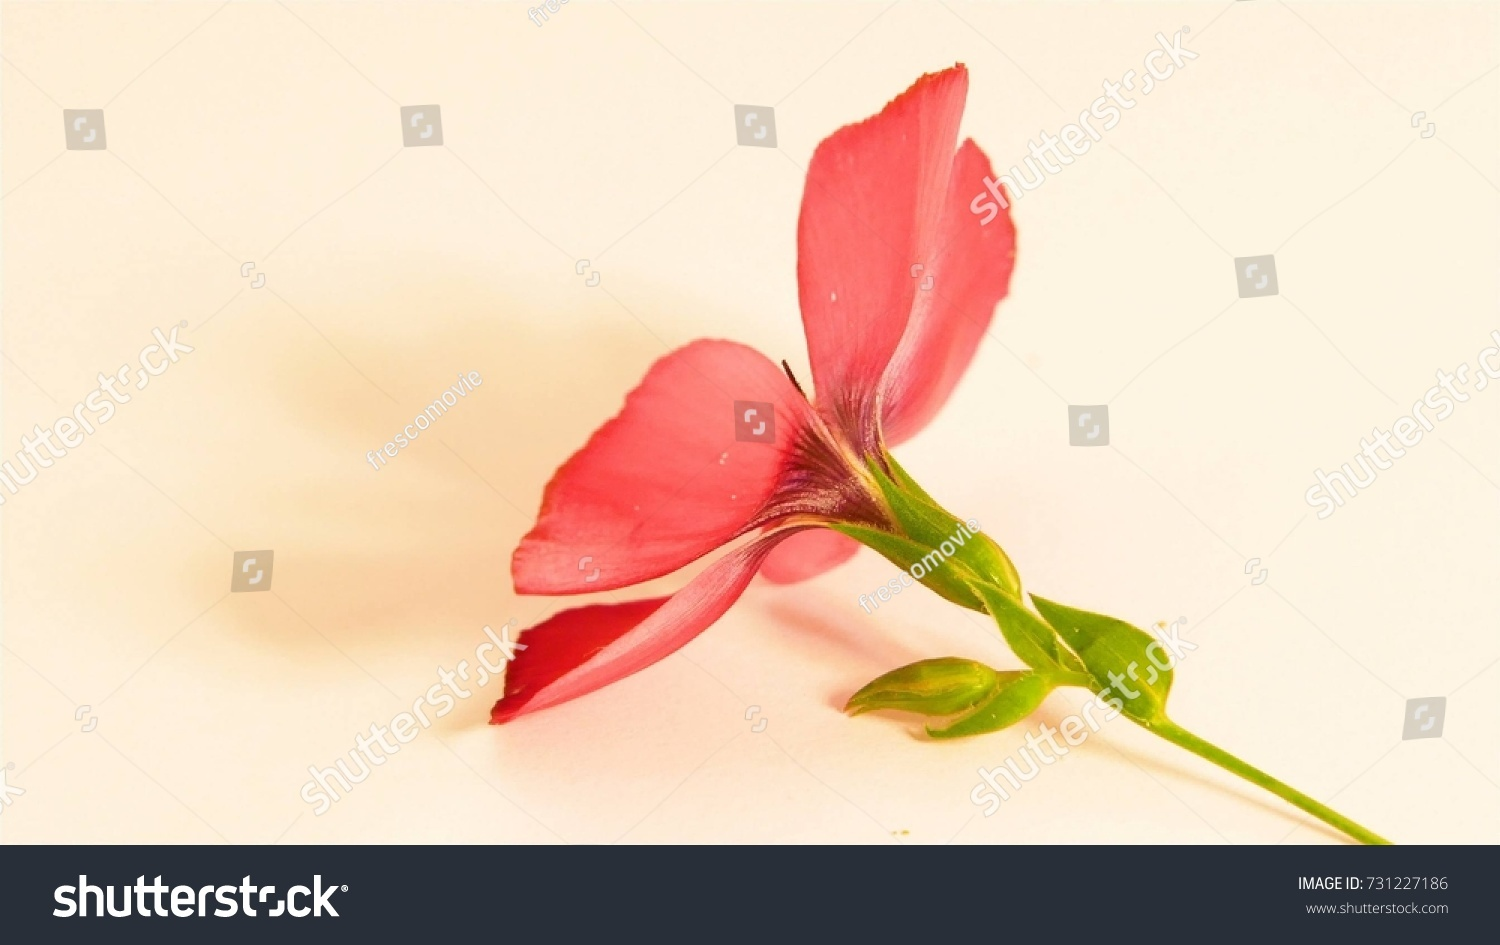 Beautiful red flower isolared on white stock photo royalty free beautiful red flower isolared on white stock photo royalty free 731227186 shutterstock izmirmasajfo